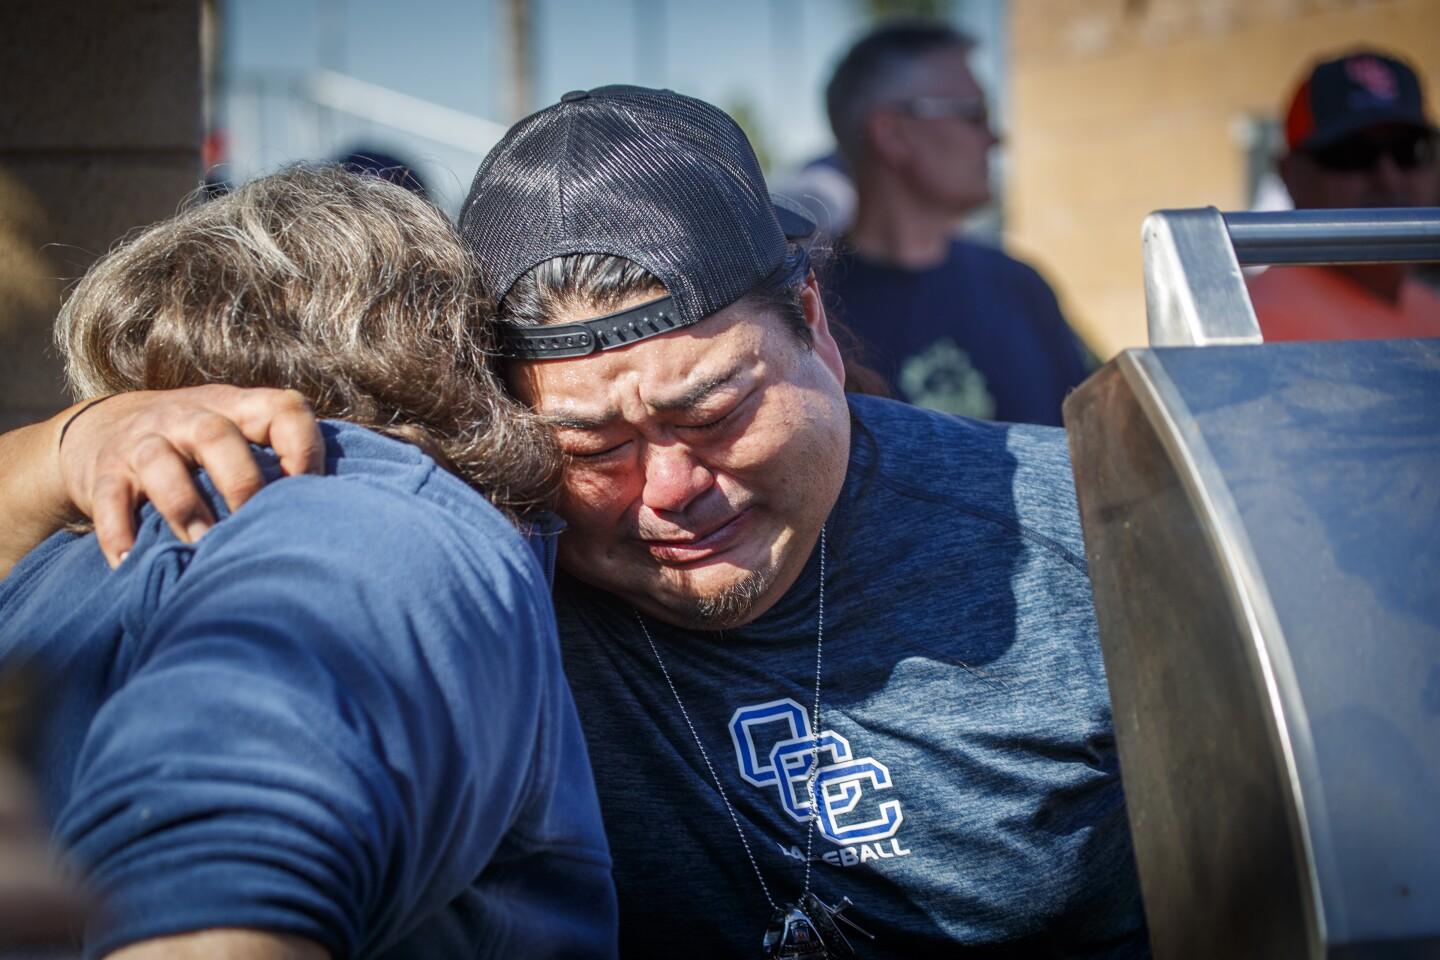 """COSTA MESA, CALIF. -- TUESDAY, JANUARY 28, 2020: Dottie Aper, left, consoles Lee Watanabe, who is mourning coach John Altobelli and who also lost his brother, Jourdan Watanabe, the former Orange Coast College catcher who died in 2009, while cooking food as Orange Coast College baseball team members participate in a short tribute to coach John Altobelli, 56, before a season opener against Chula Vista Southwestern, just two days after longtime Pirates coach Altobelli, his wife, Keri, and their 13-year-old daughter, Alyssa, died in the fiery helicopter crash that also killed former Lakers star Kobe Bryant on Sunday. Speeches by associate head coach Nate Johnson and athletic director Jason Kehler as well as a moment of silence on the Wendell Pickens Field on the school's campus in Costa Mesa, Calif., on Jan. 28, 2020. Altobelli guided the Pirates to four state championships and more than 700 victories in 27 seasons as coach. Last season, Altobelli was named national coach of the year by the American Baseball Coaches Association for leading the Pirates to the state title. OCC sophomore left-handed pitcher Mike Ryhlick started the game with the inscription """"J.A. 14,"""" Altobelli's initials and jersey number, on his cap. the team erected a bright orange banner with the No. 14 and the phrase """"Forever a Pirate"""" on the left-field fence next to the No. 22 banner honoring Jourdan Watanabe, the former OCC catcher who died in 2009. (Allen J. Schaben / Los Angeles Times)"""